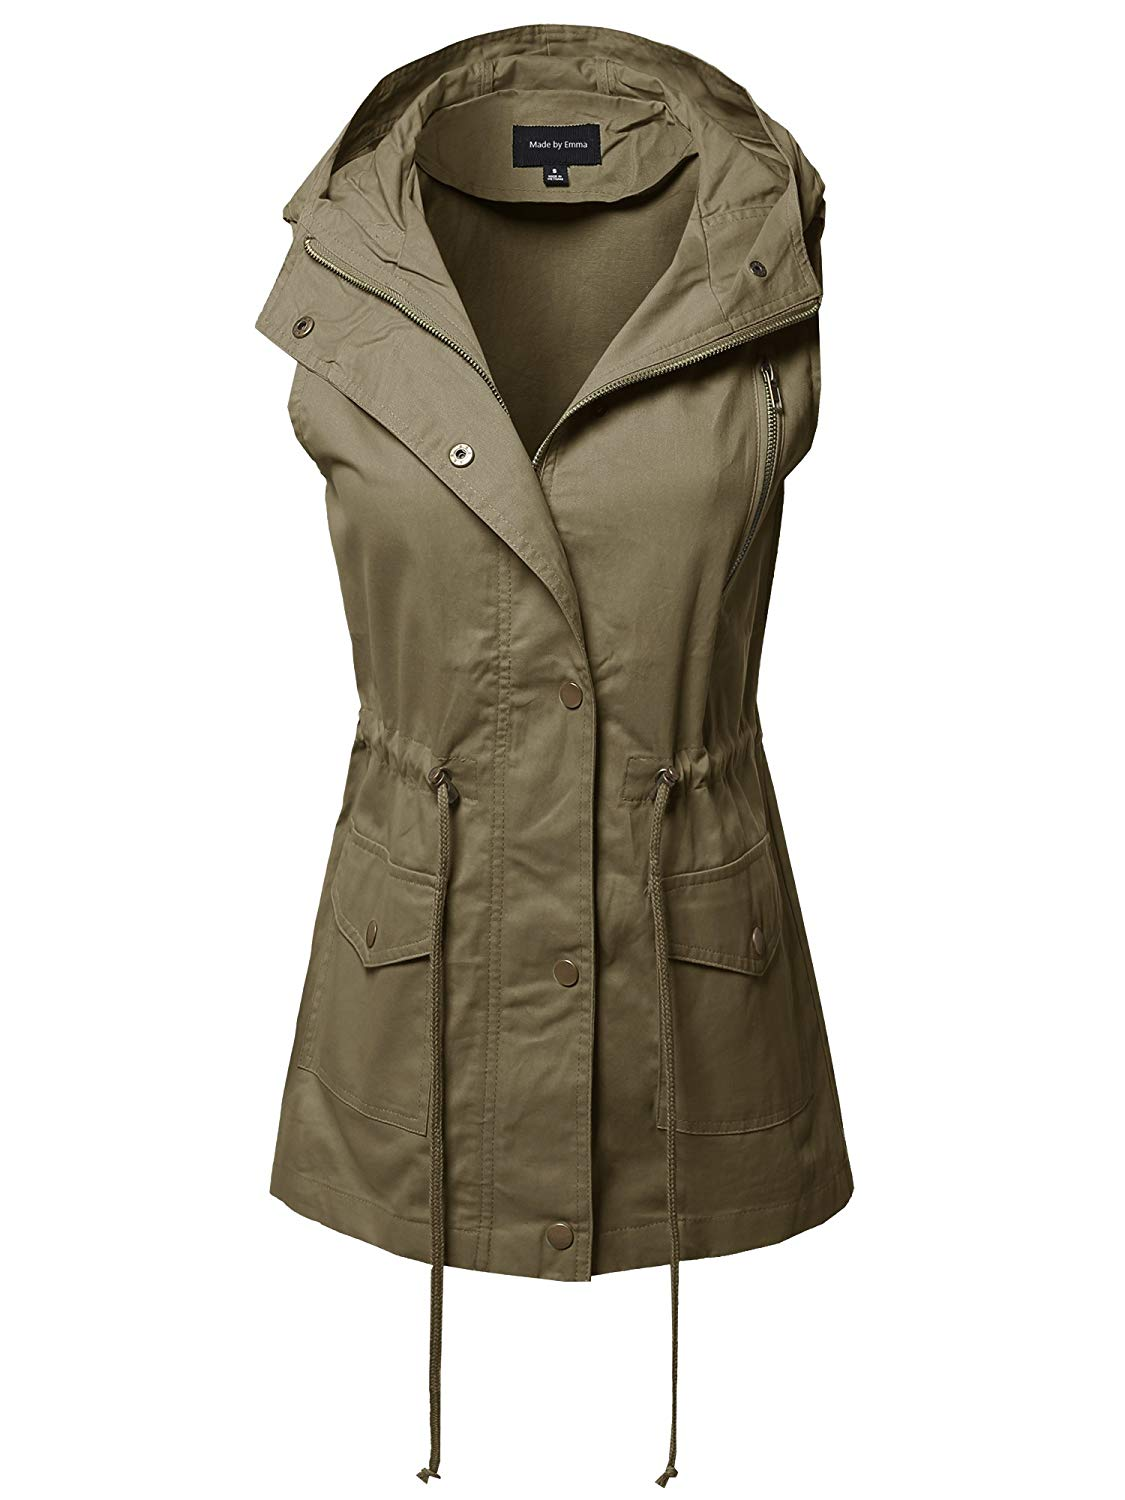 6798fbed03830 Get Quotations · Made by Emma Women s Sleeveless Safari Military Utility  Drawstring Hoodie Vest Jacket (S ~ XL